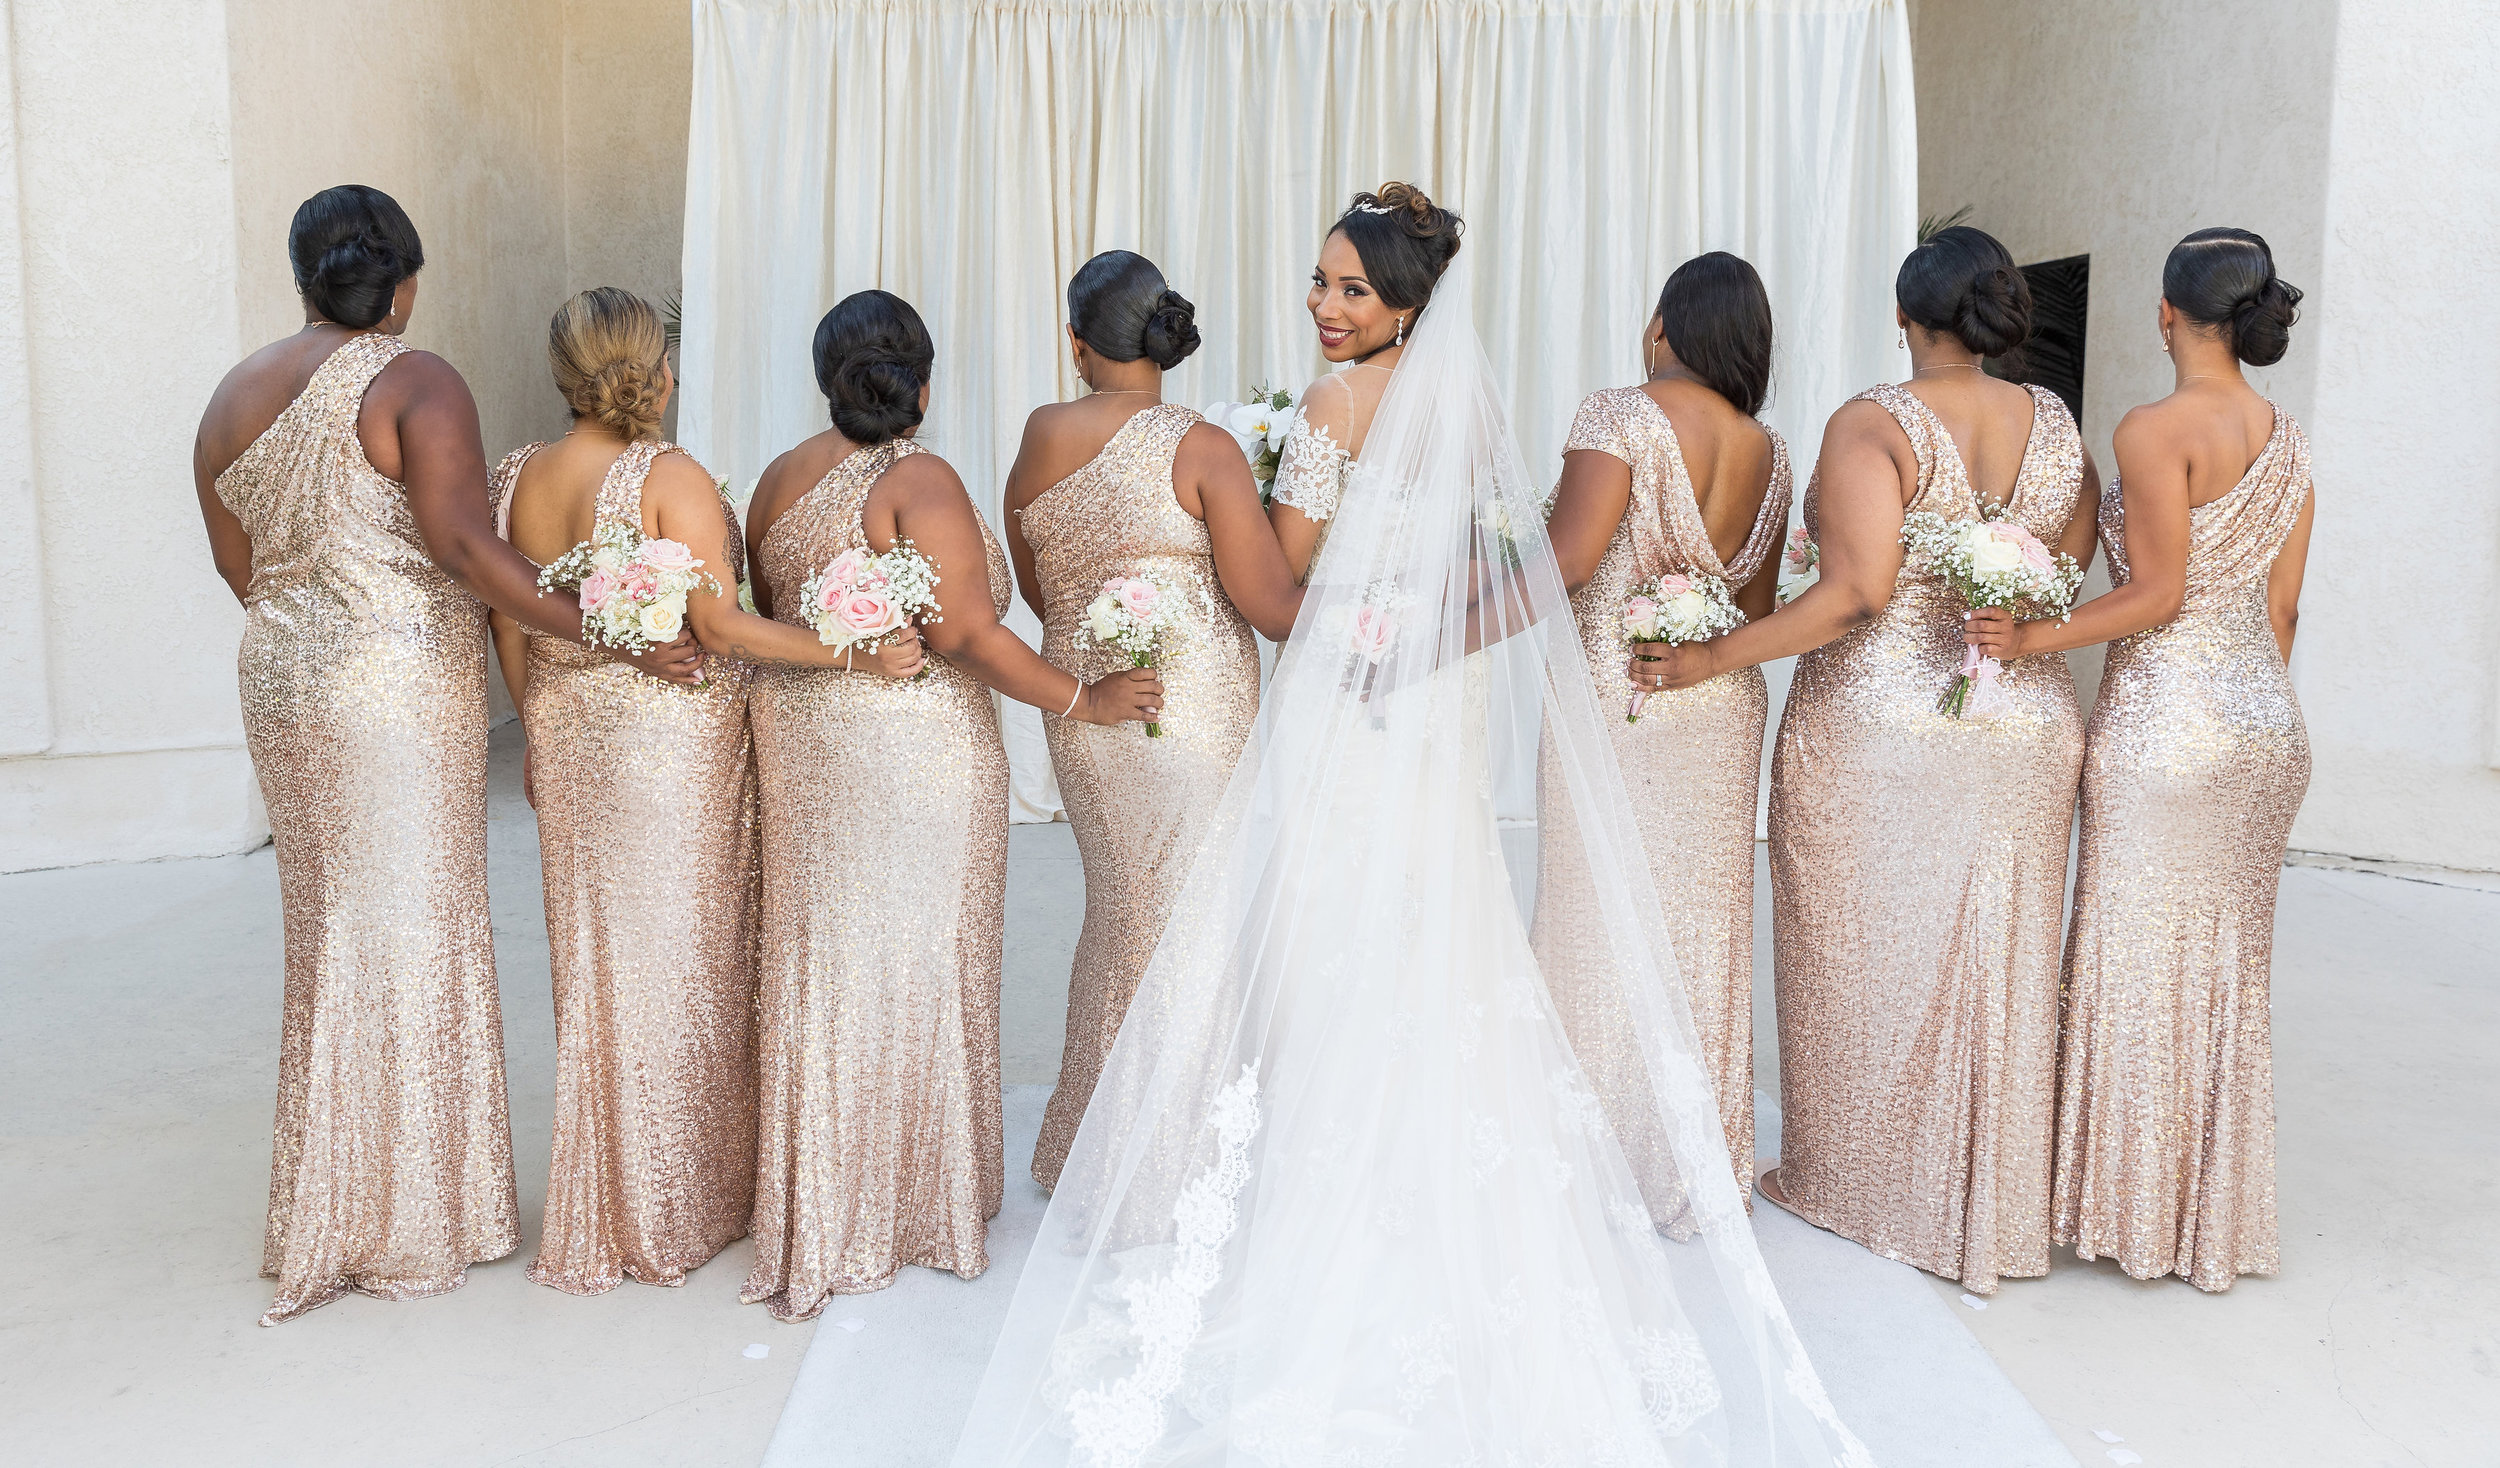 ! Bride + Bridesmaids in shimmery gold dresses.jpg